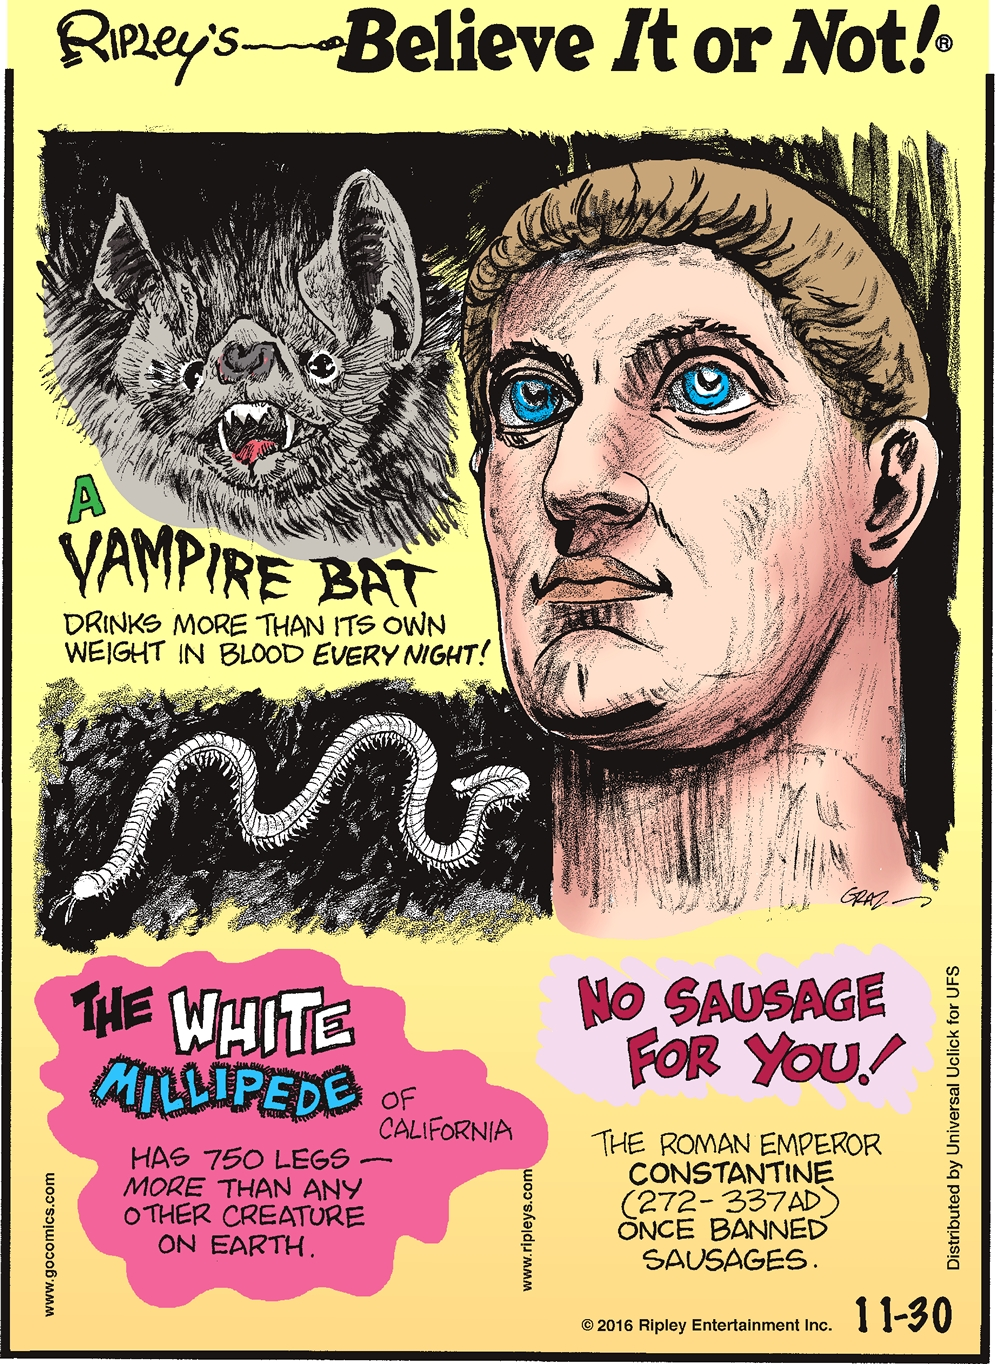 A vampire bat drinks more than its own weight in blood every night! -------------------- The white millipede of California has 750 legs—more than any other creature on Earth. -------------------- No sausage for you! The Roman Emperor Constantine once banned sausages.